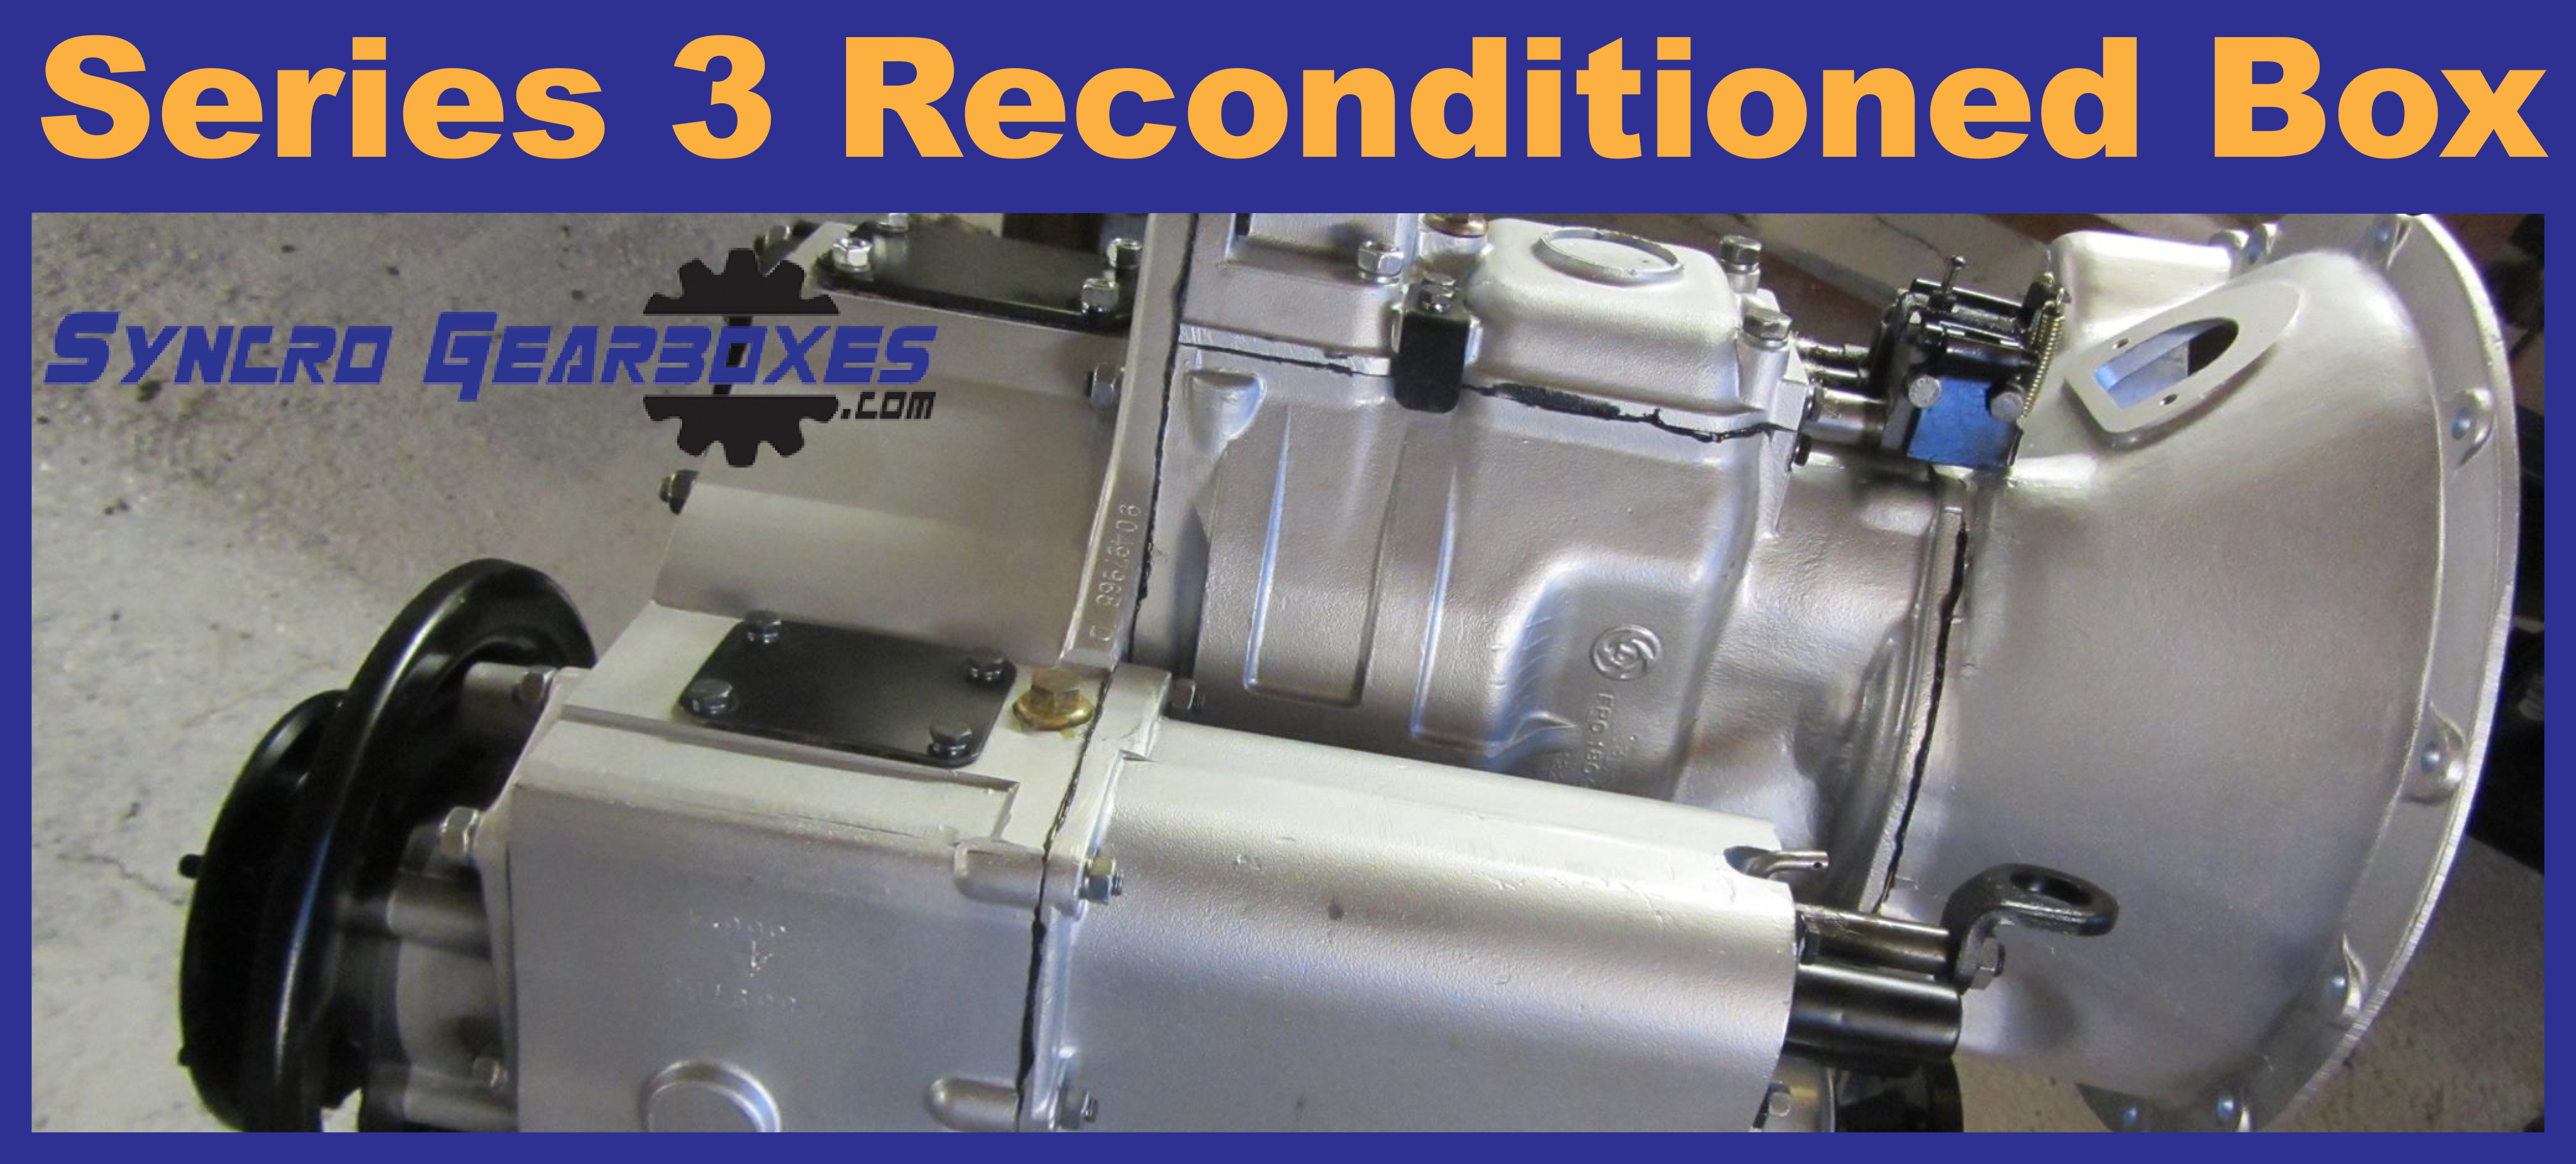 engines reconditioned rebuilt org range recon the engine pin land matte at from black of rover landrover cheapest network huge buy our suppliers vogue get prices remanufactured